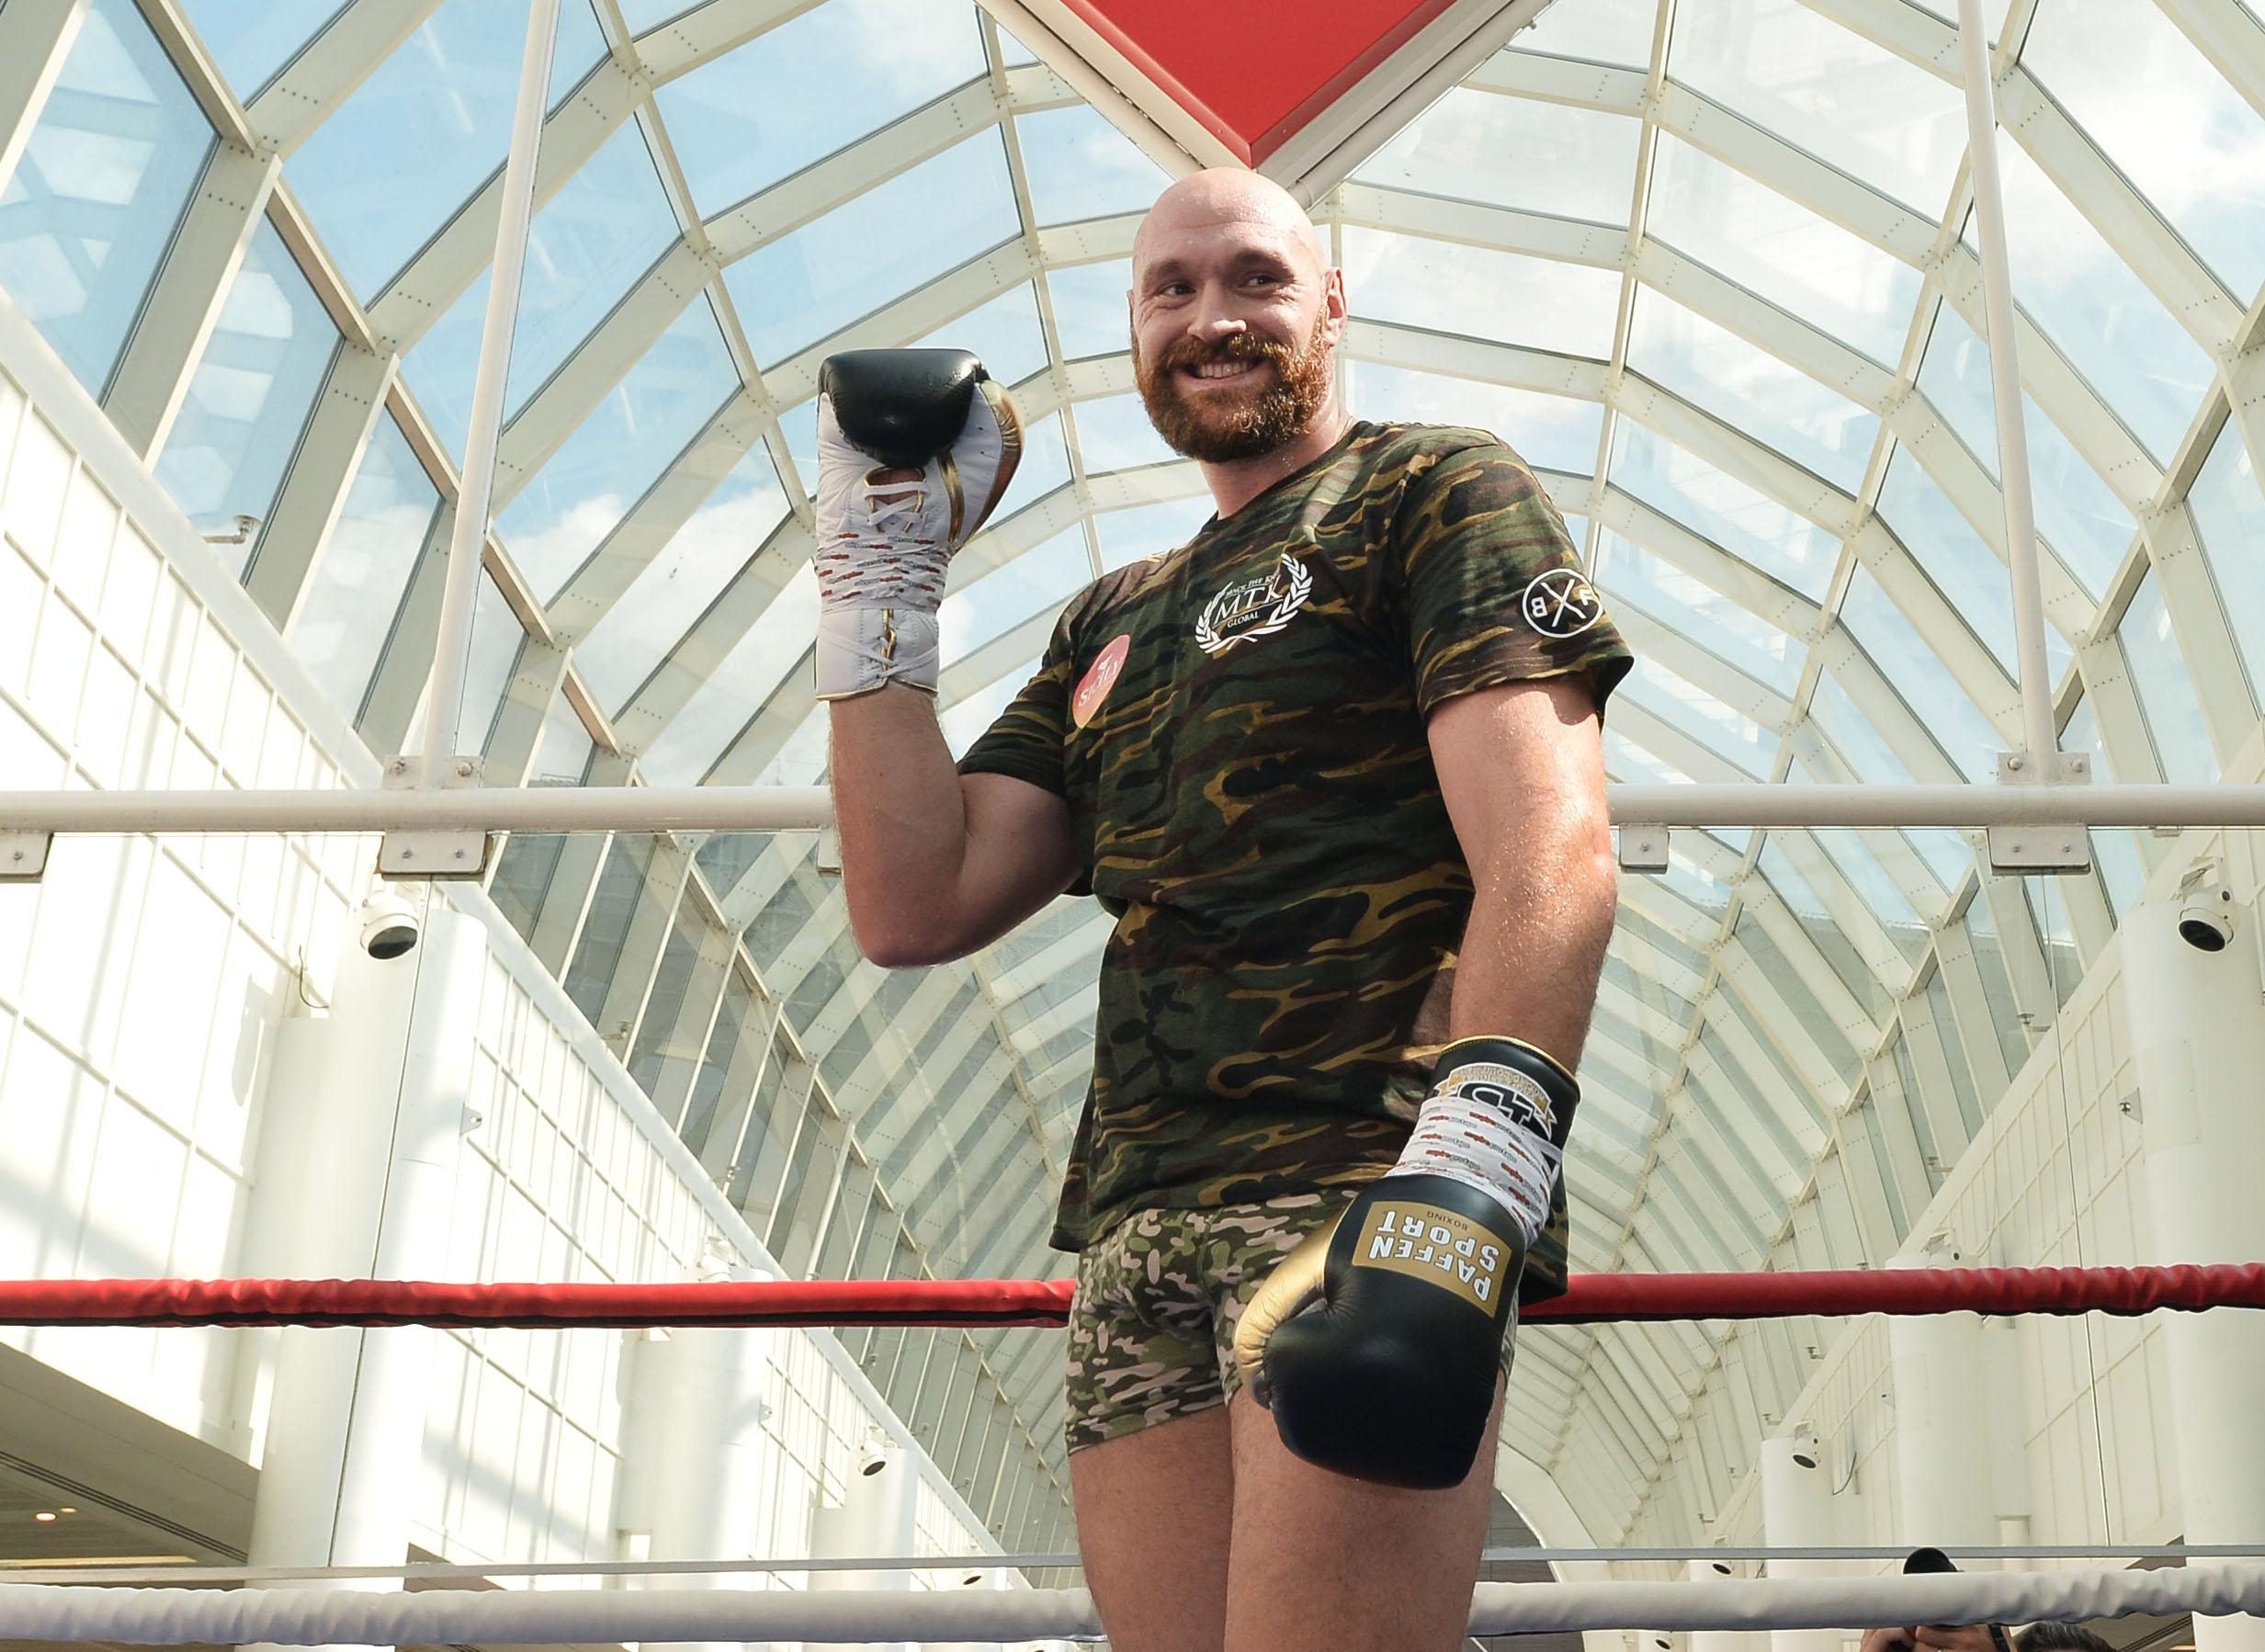 The self-proclaimed Gypsy King during a public workout on Wednesday